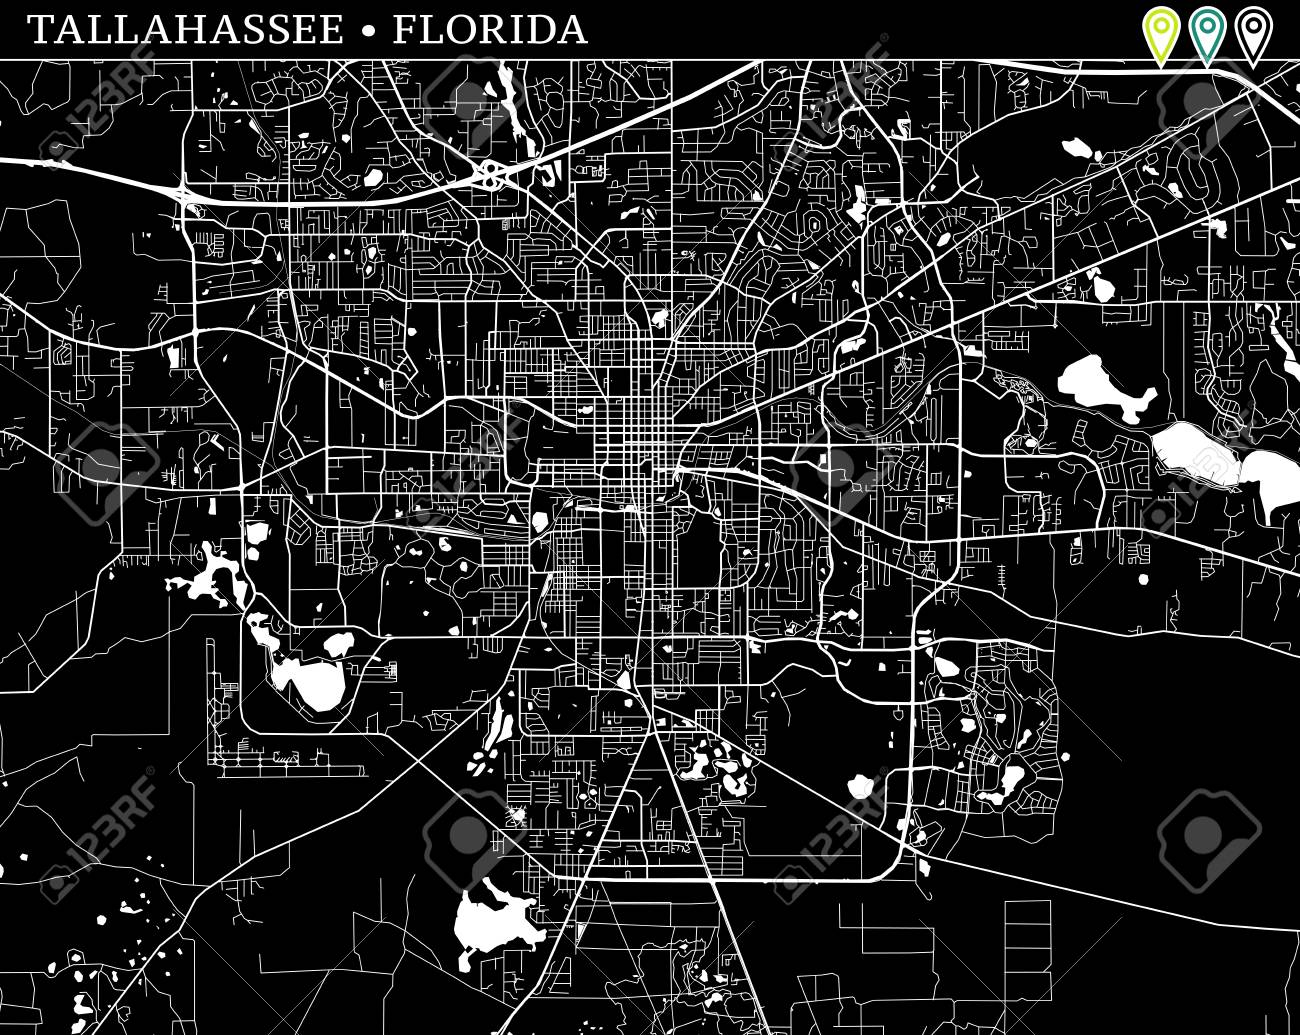 Map Of Tallahasse Florida Simple Map Of Tallahassee, Florida, USA. Black And White Version